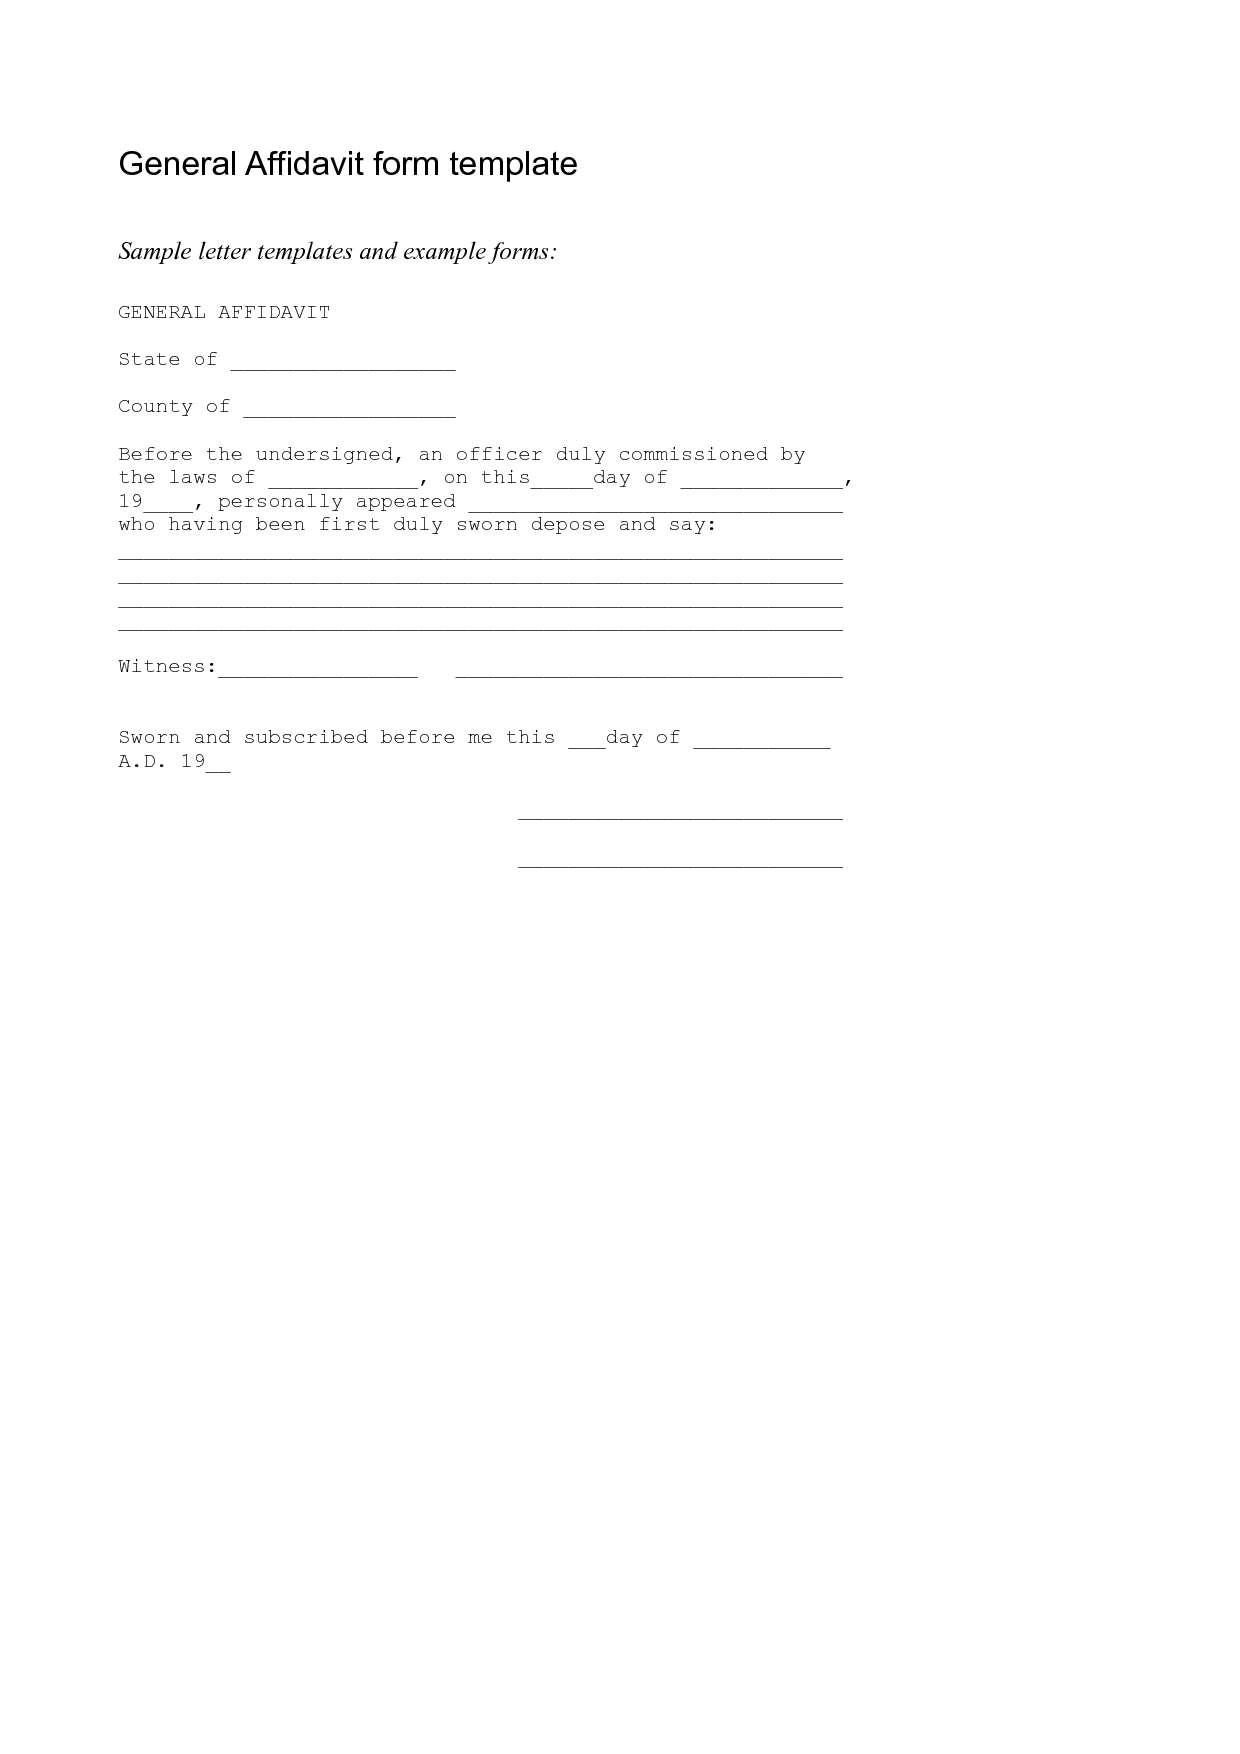 General Affidavit Template  General Affidavit Example